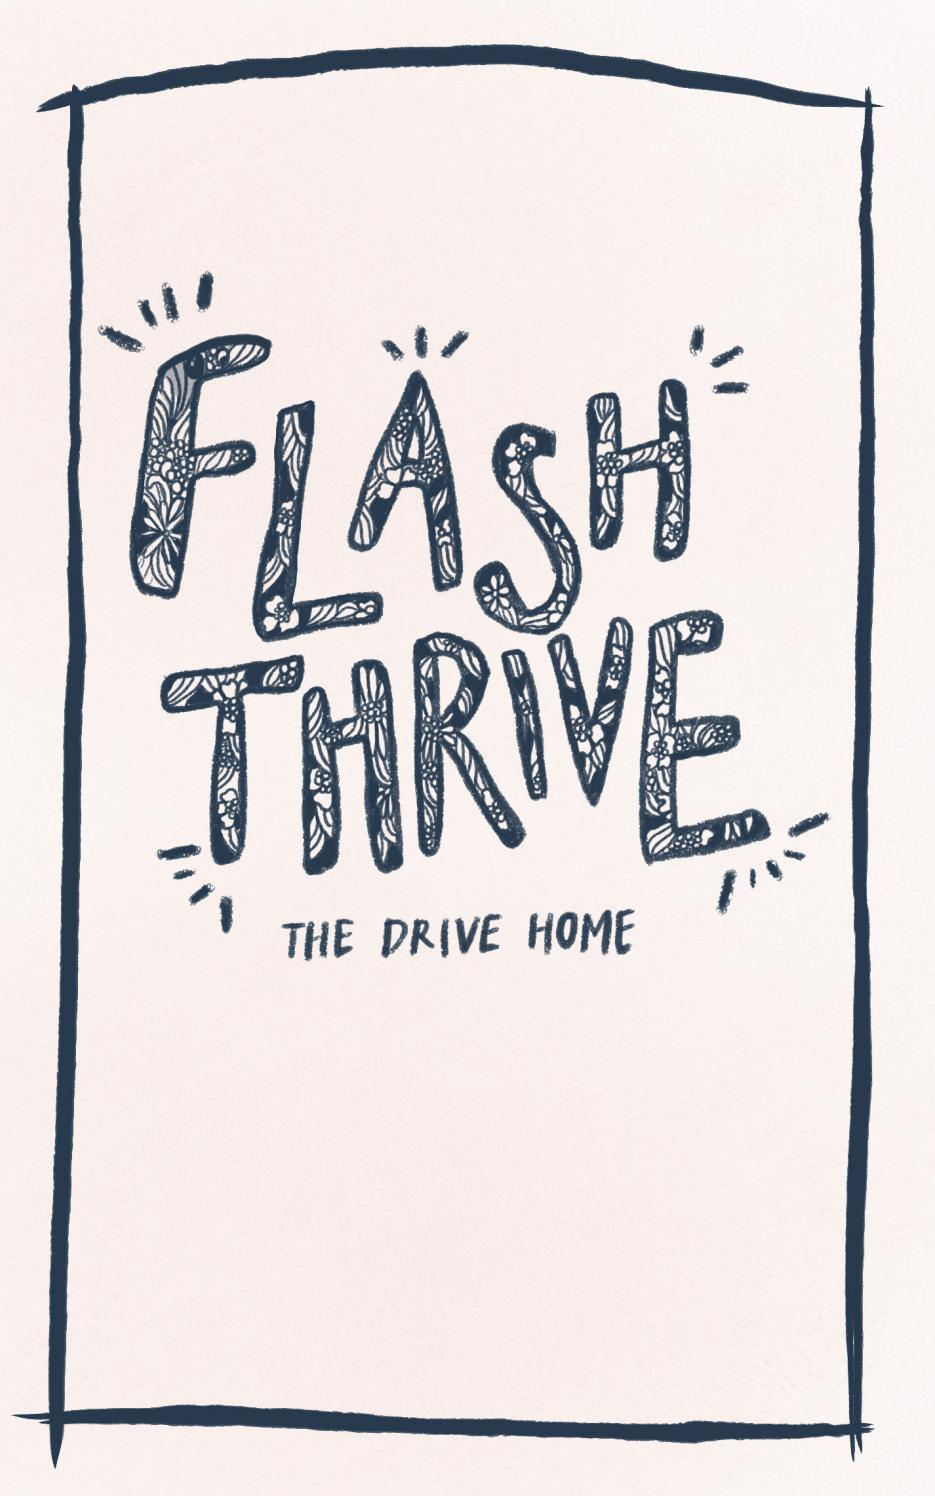 flash thrive: the drive home by flash thrive - issuu